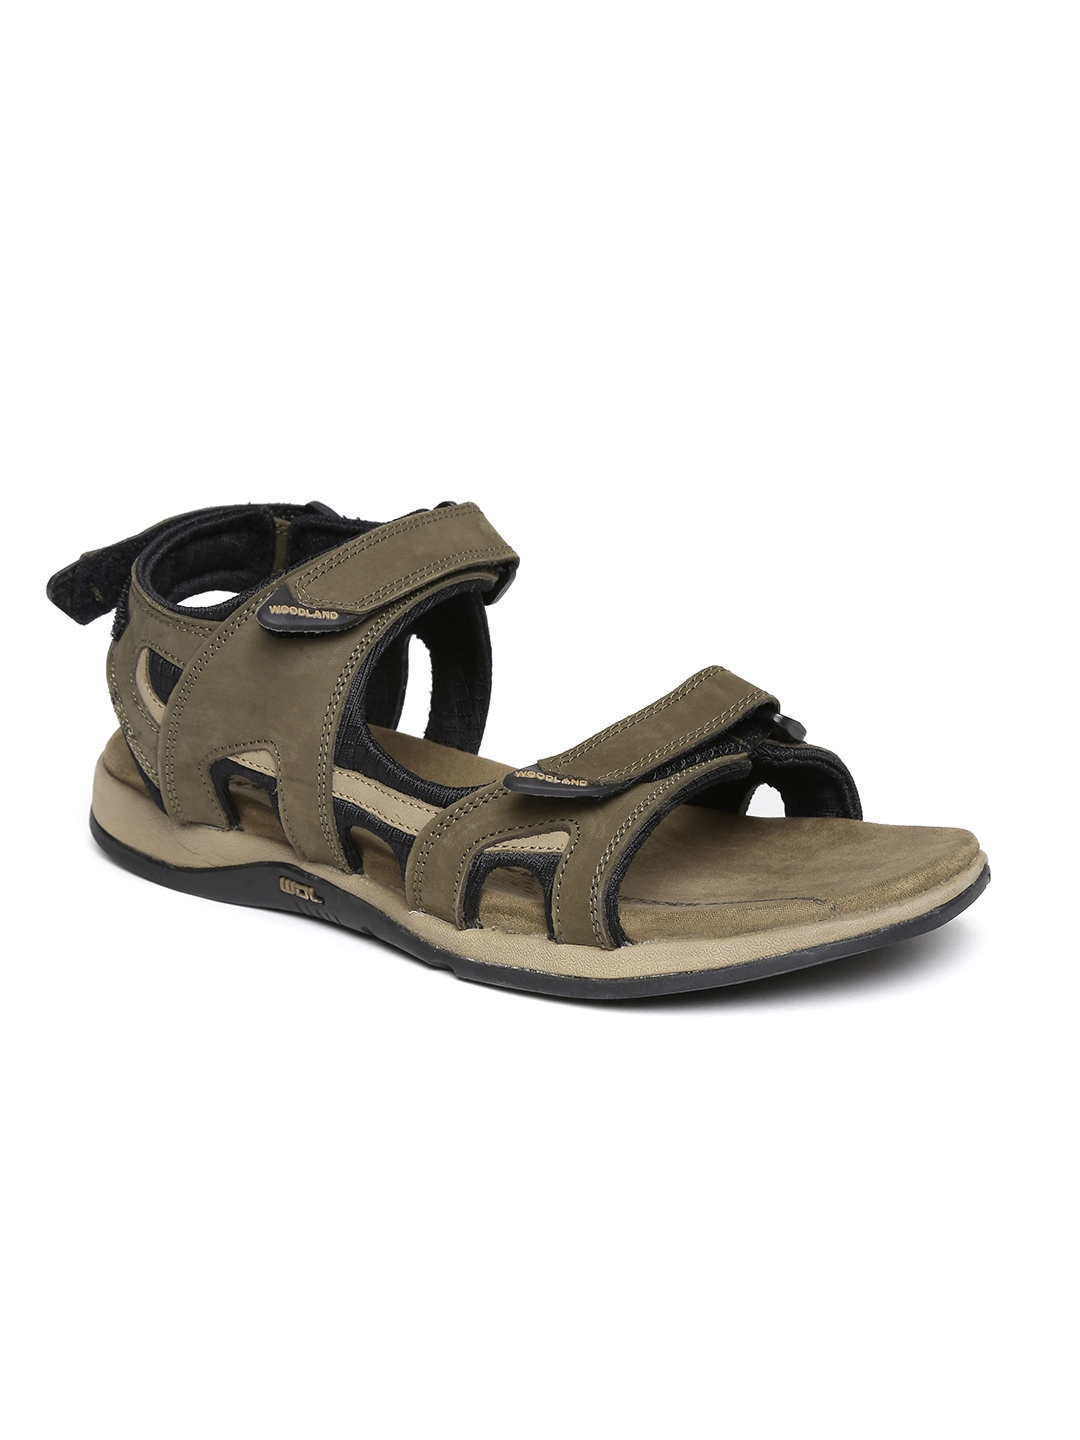 5109fab3b9a Buy Woodland Men Olive Green Nubuck Leather Sandals - Sports Sandals ...